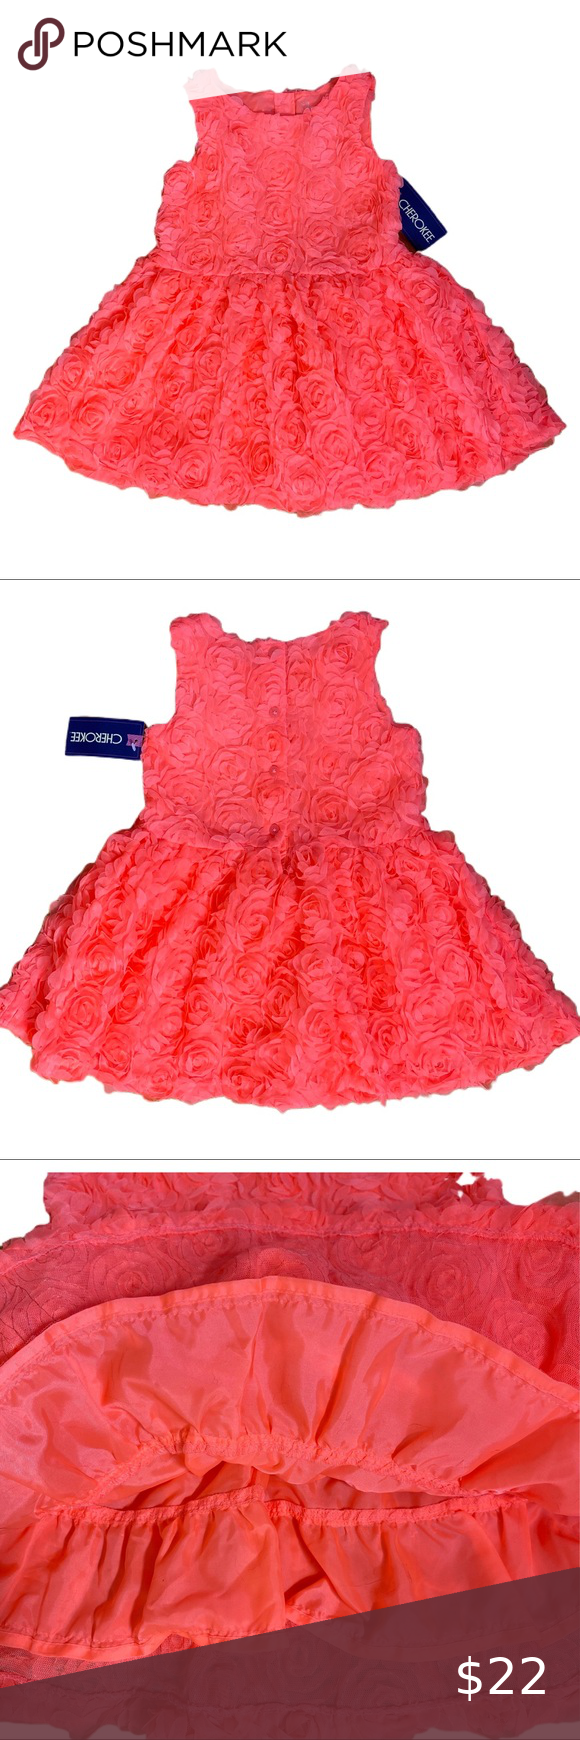 Girls Dress Formal Easter Party Dress Size 4t Girls Coral Dress Girls Dresses Party Dress [ 1740 x 580 Pixel ]